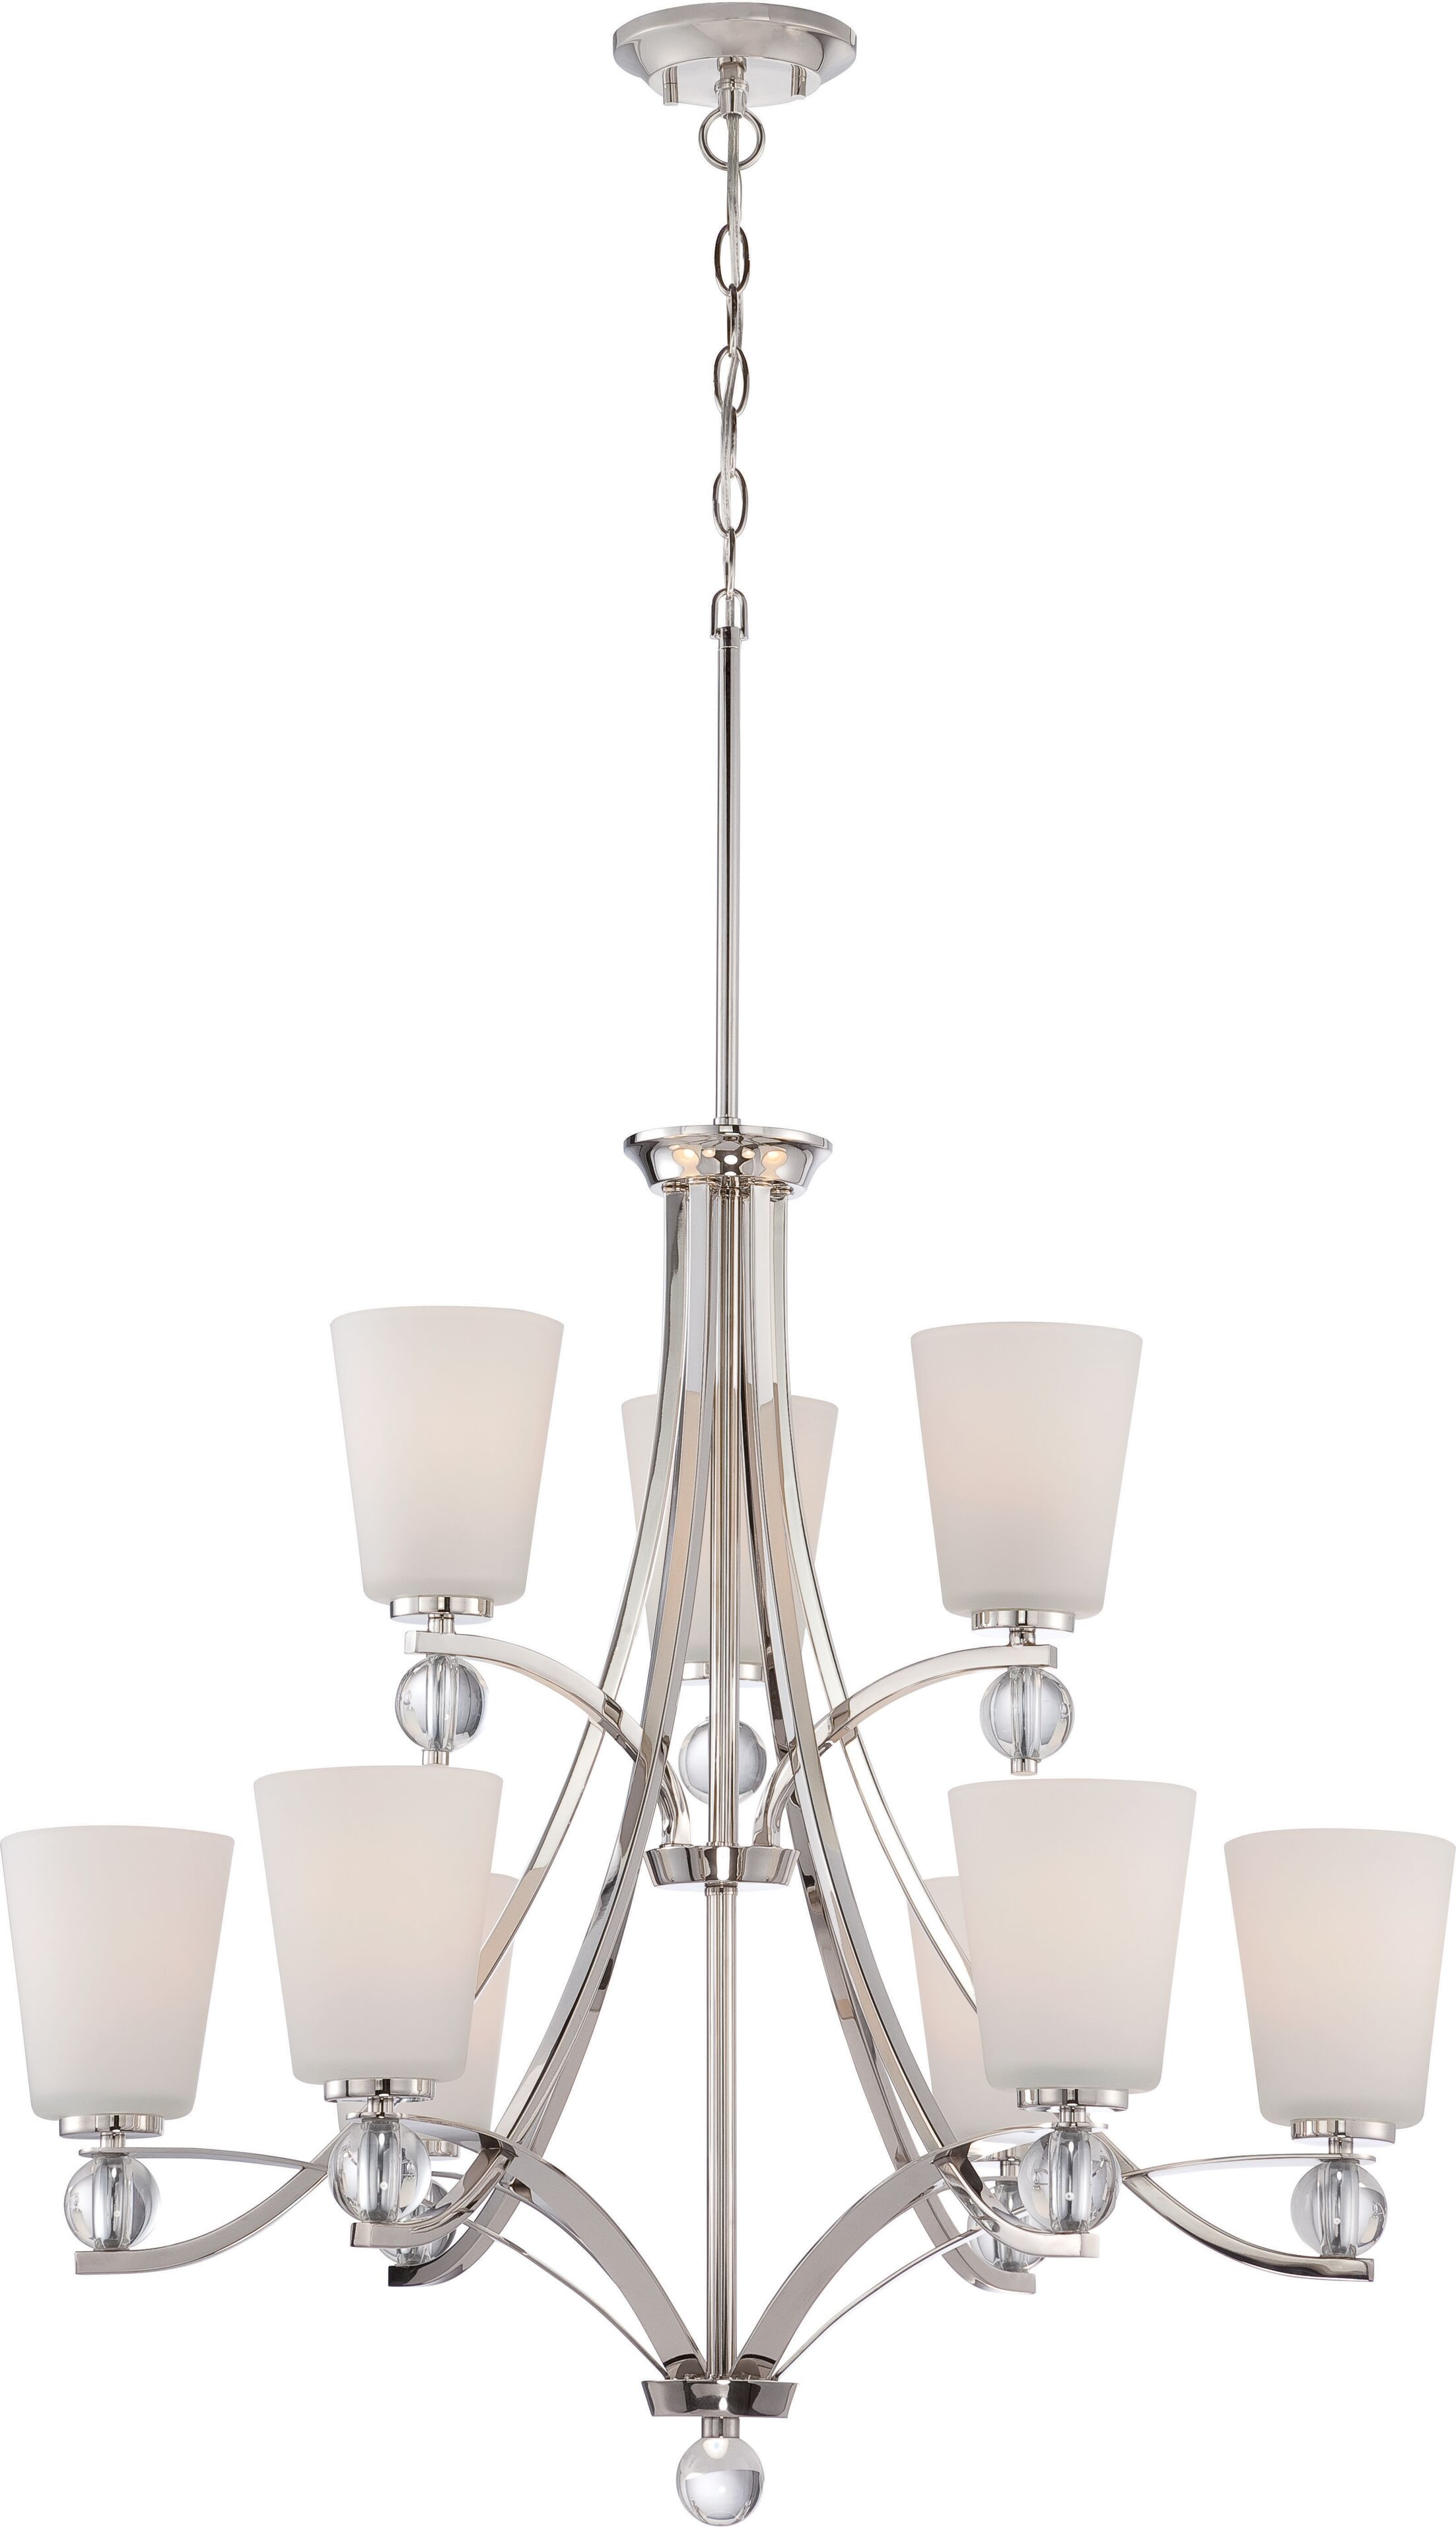 Gace 9-Light Shaded Chandelier